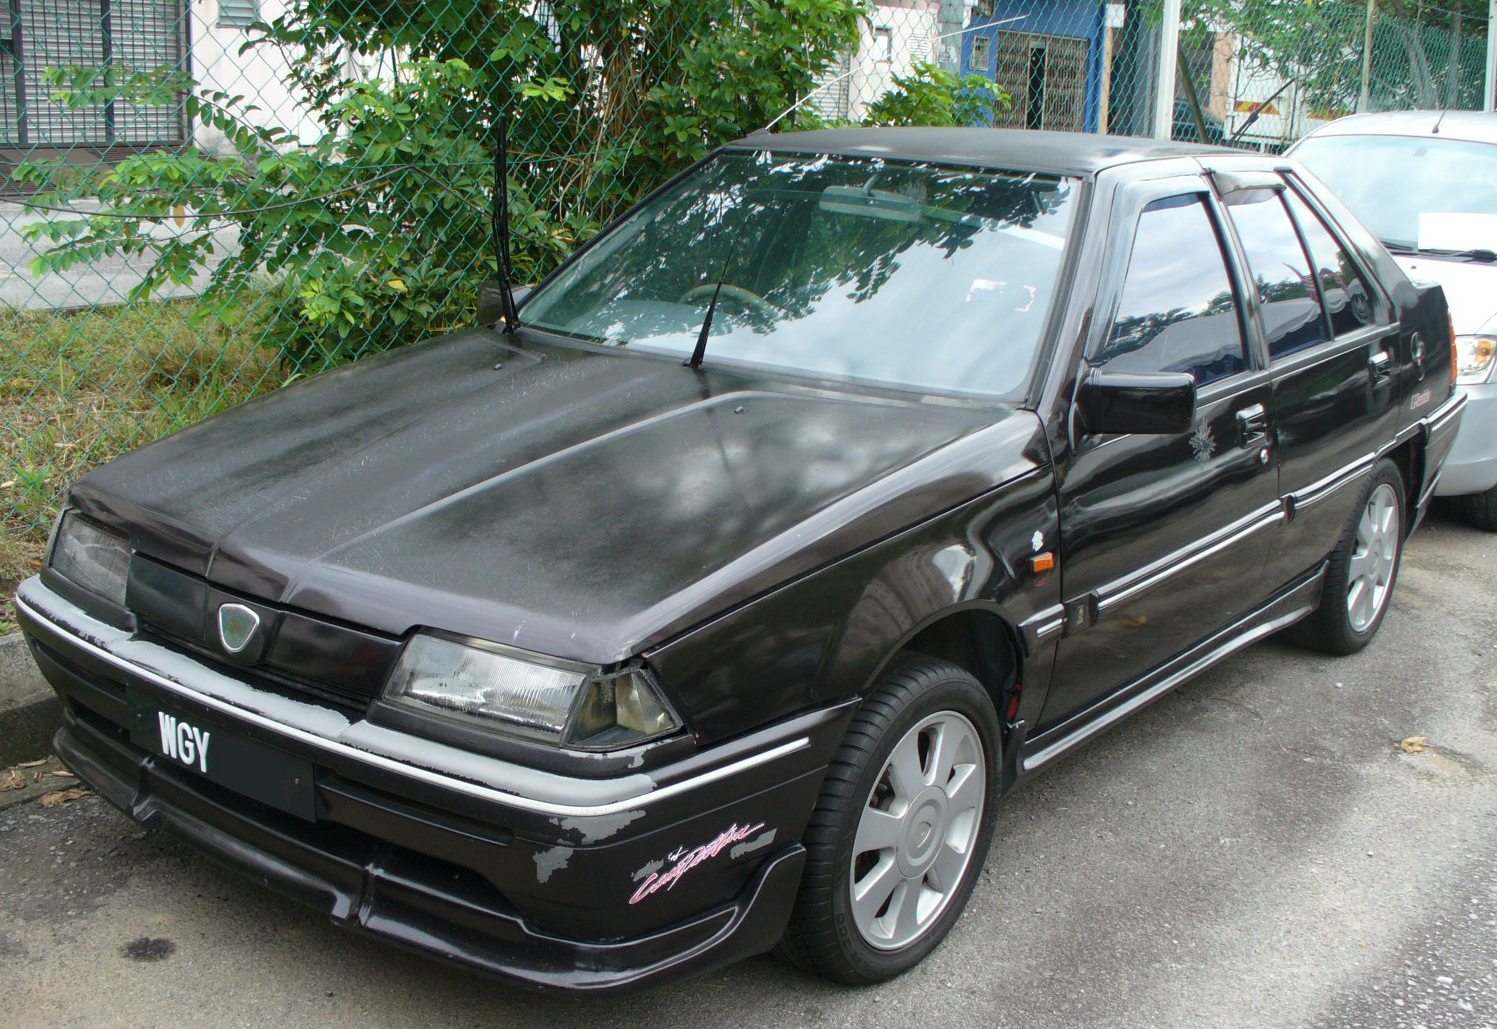 Stream Used Car: Proton Iswara Aeroback 1.3 Manual WGY